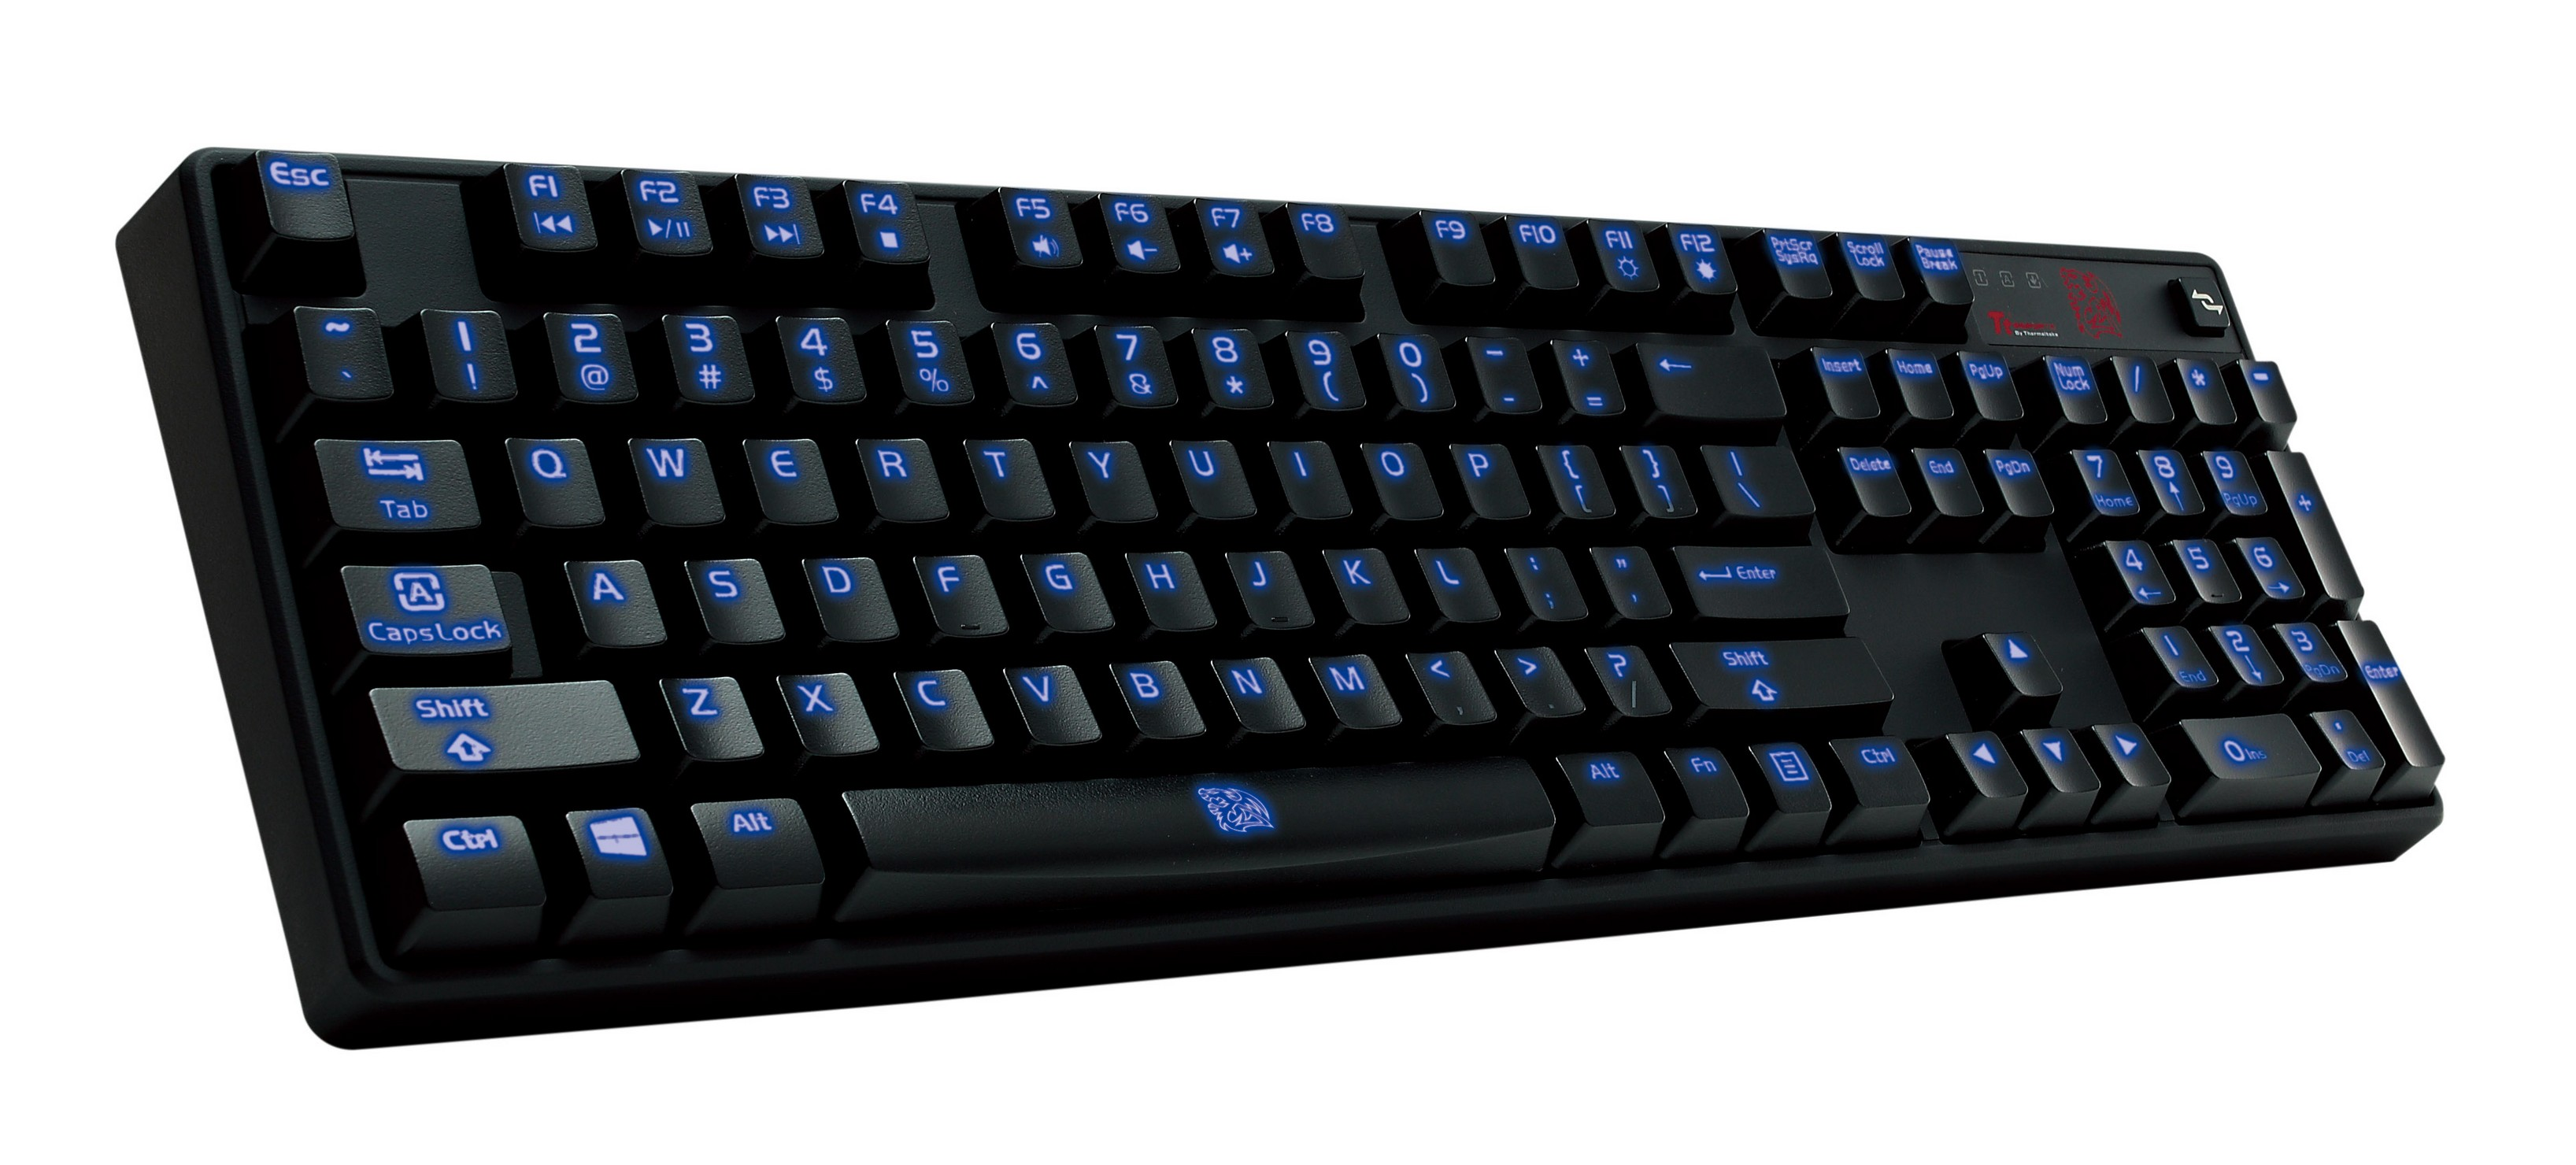 Tt eSPORTS Introduces an Ultimate Gaming Weapon The New Poseidon Illuminated Mechanical Gaming Keyboard